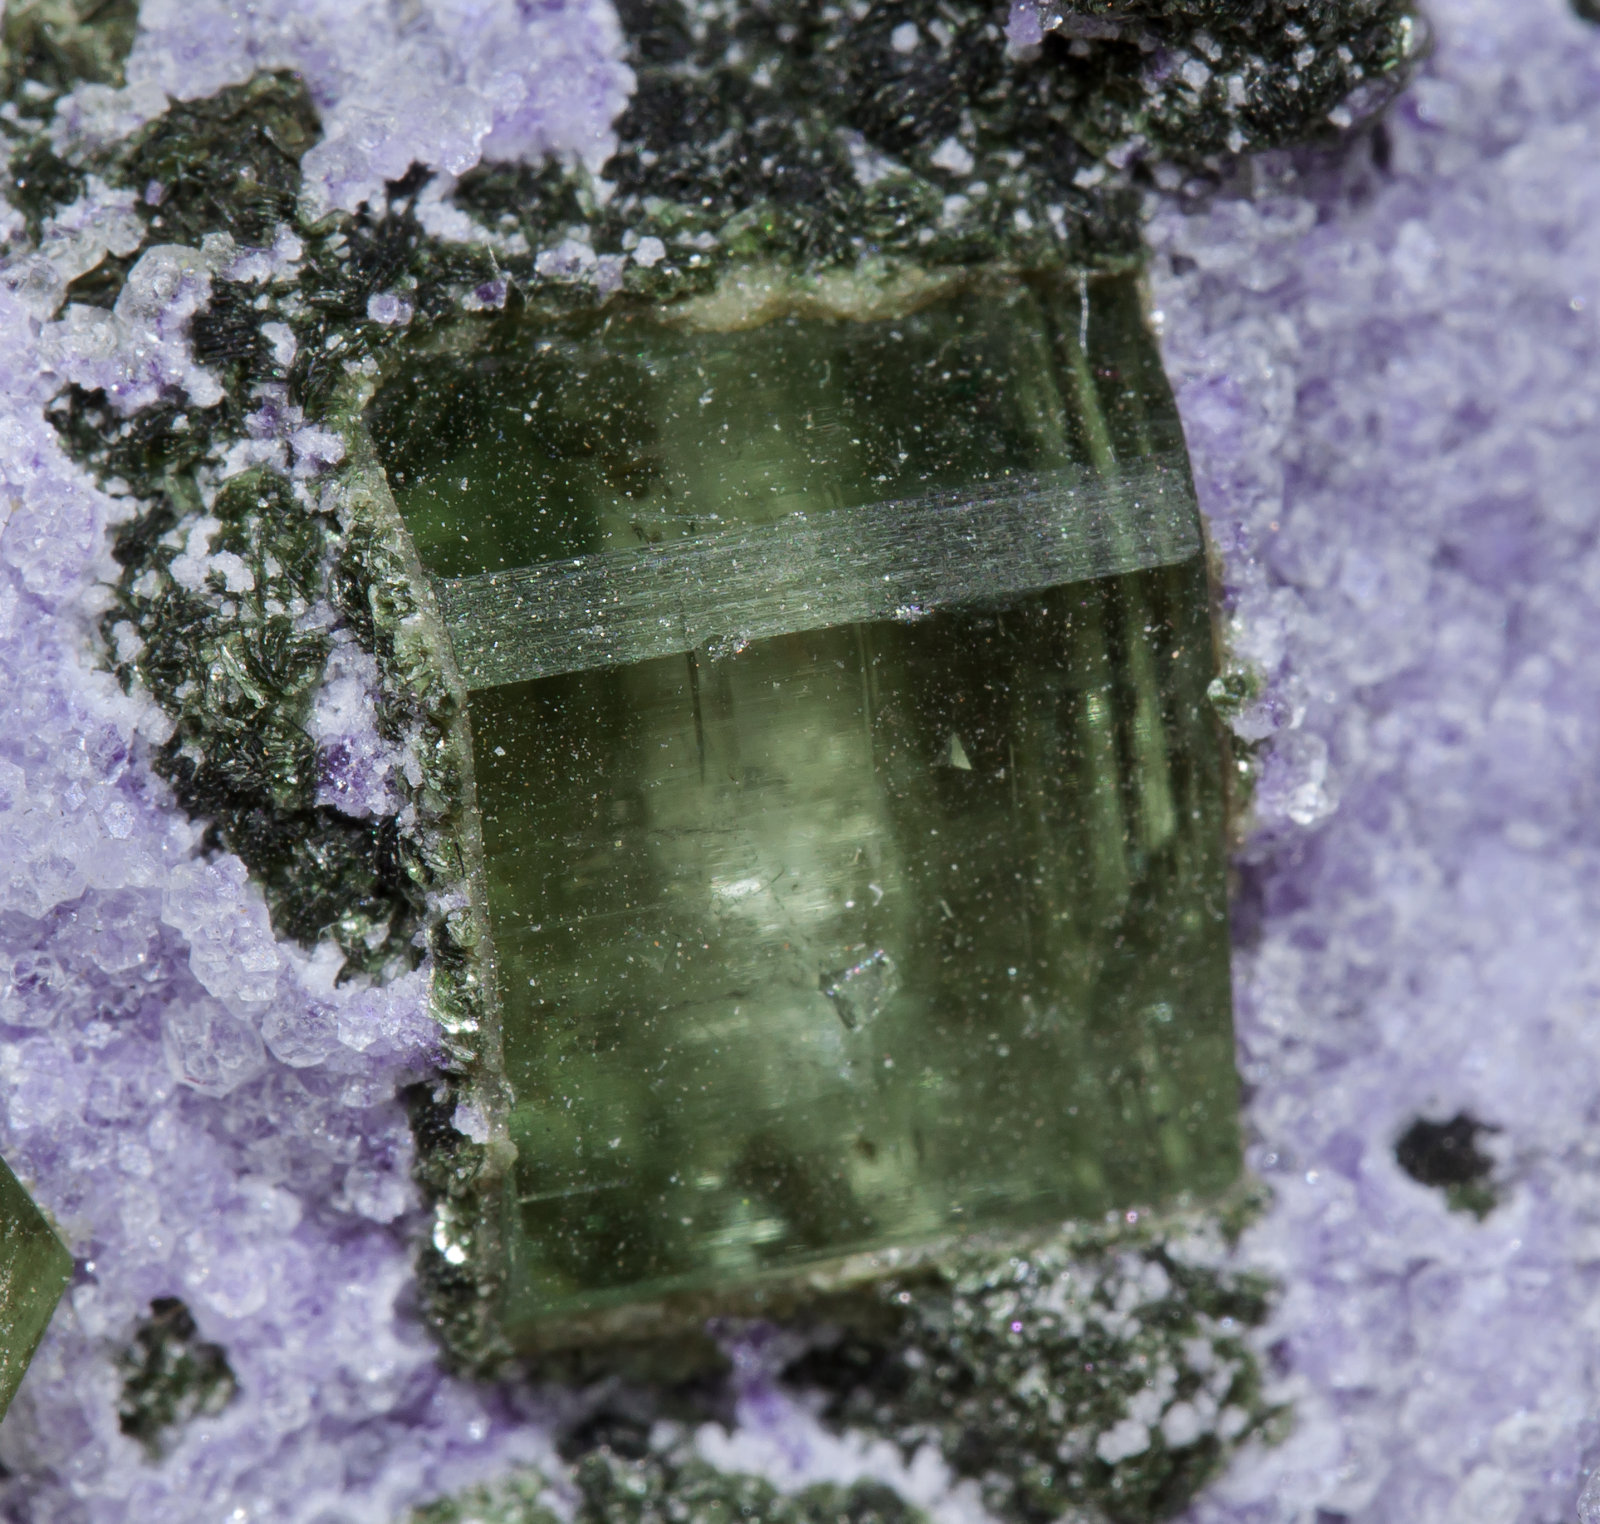 specimens/s_imagesAB5/Fluorite-NG98AB5d.jpg